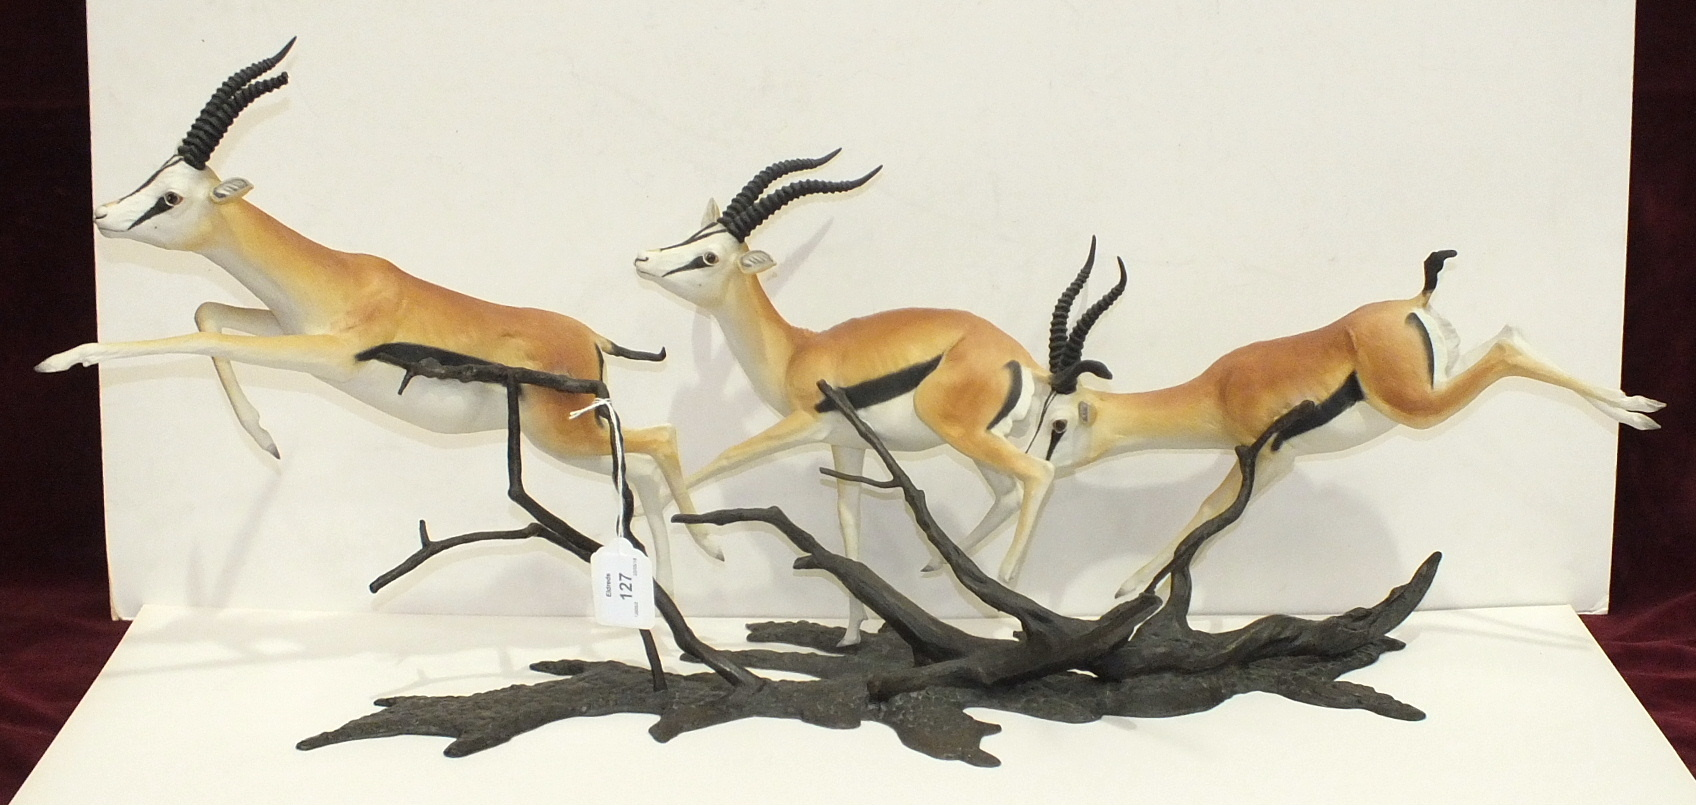 Lot 127 - American, 20th century, a trio of finely-detailed porcelain gazelles bounding through a bronze